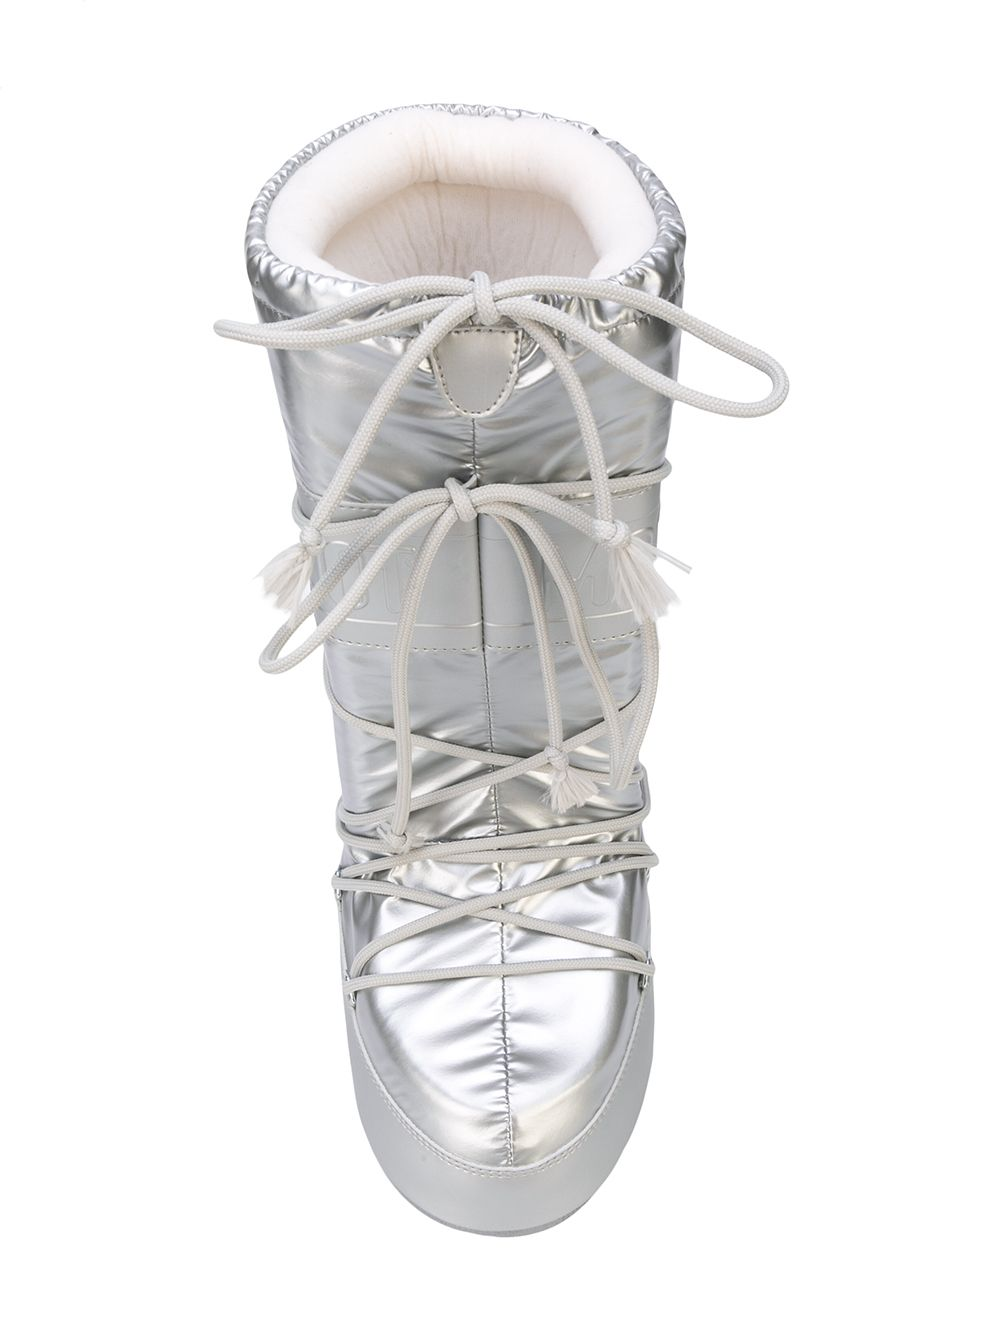 odd92 Jeremy Scott x Moonboot Silver Short Moonboots - 4